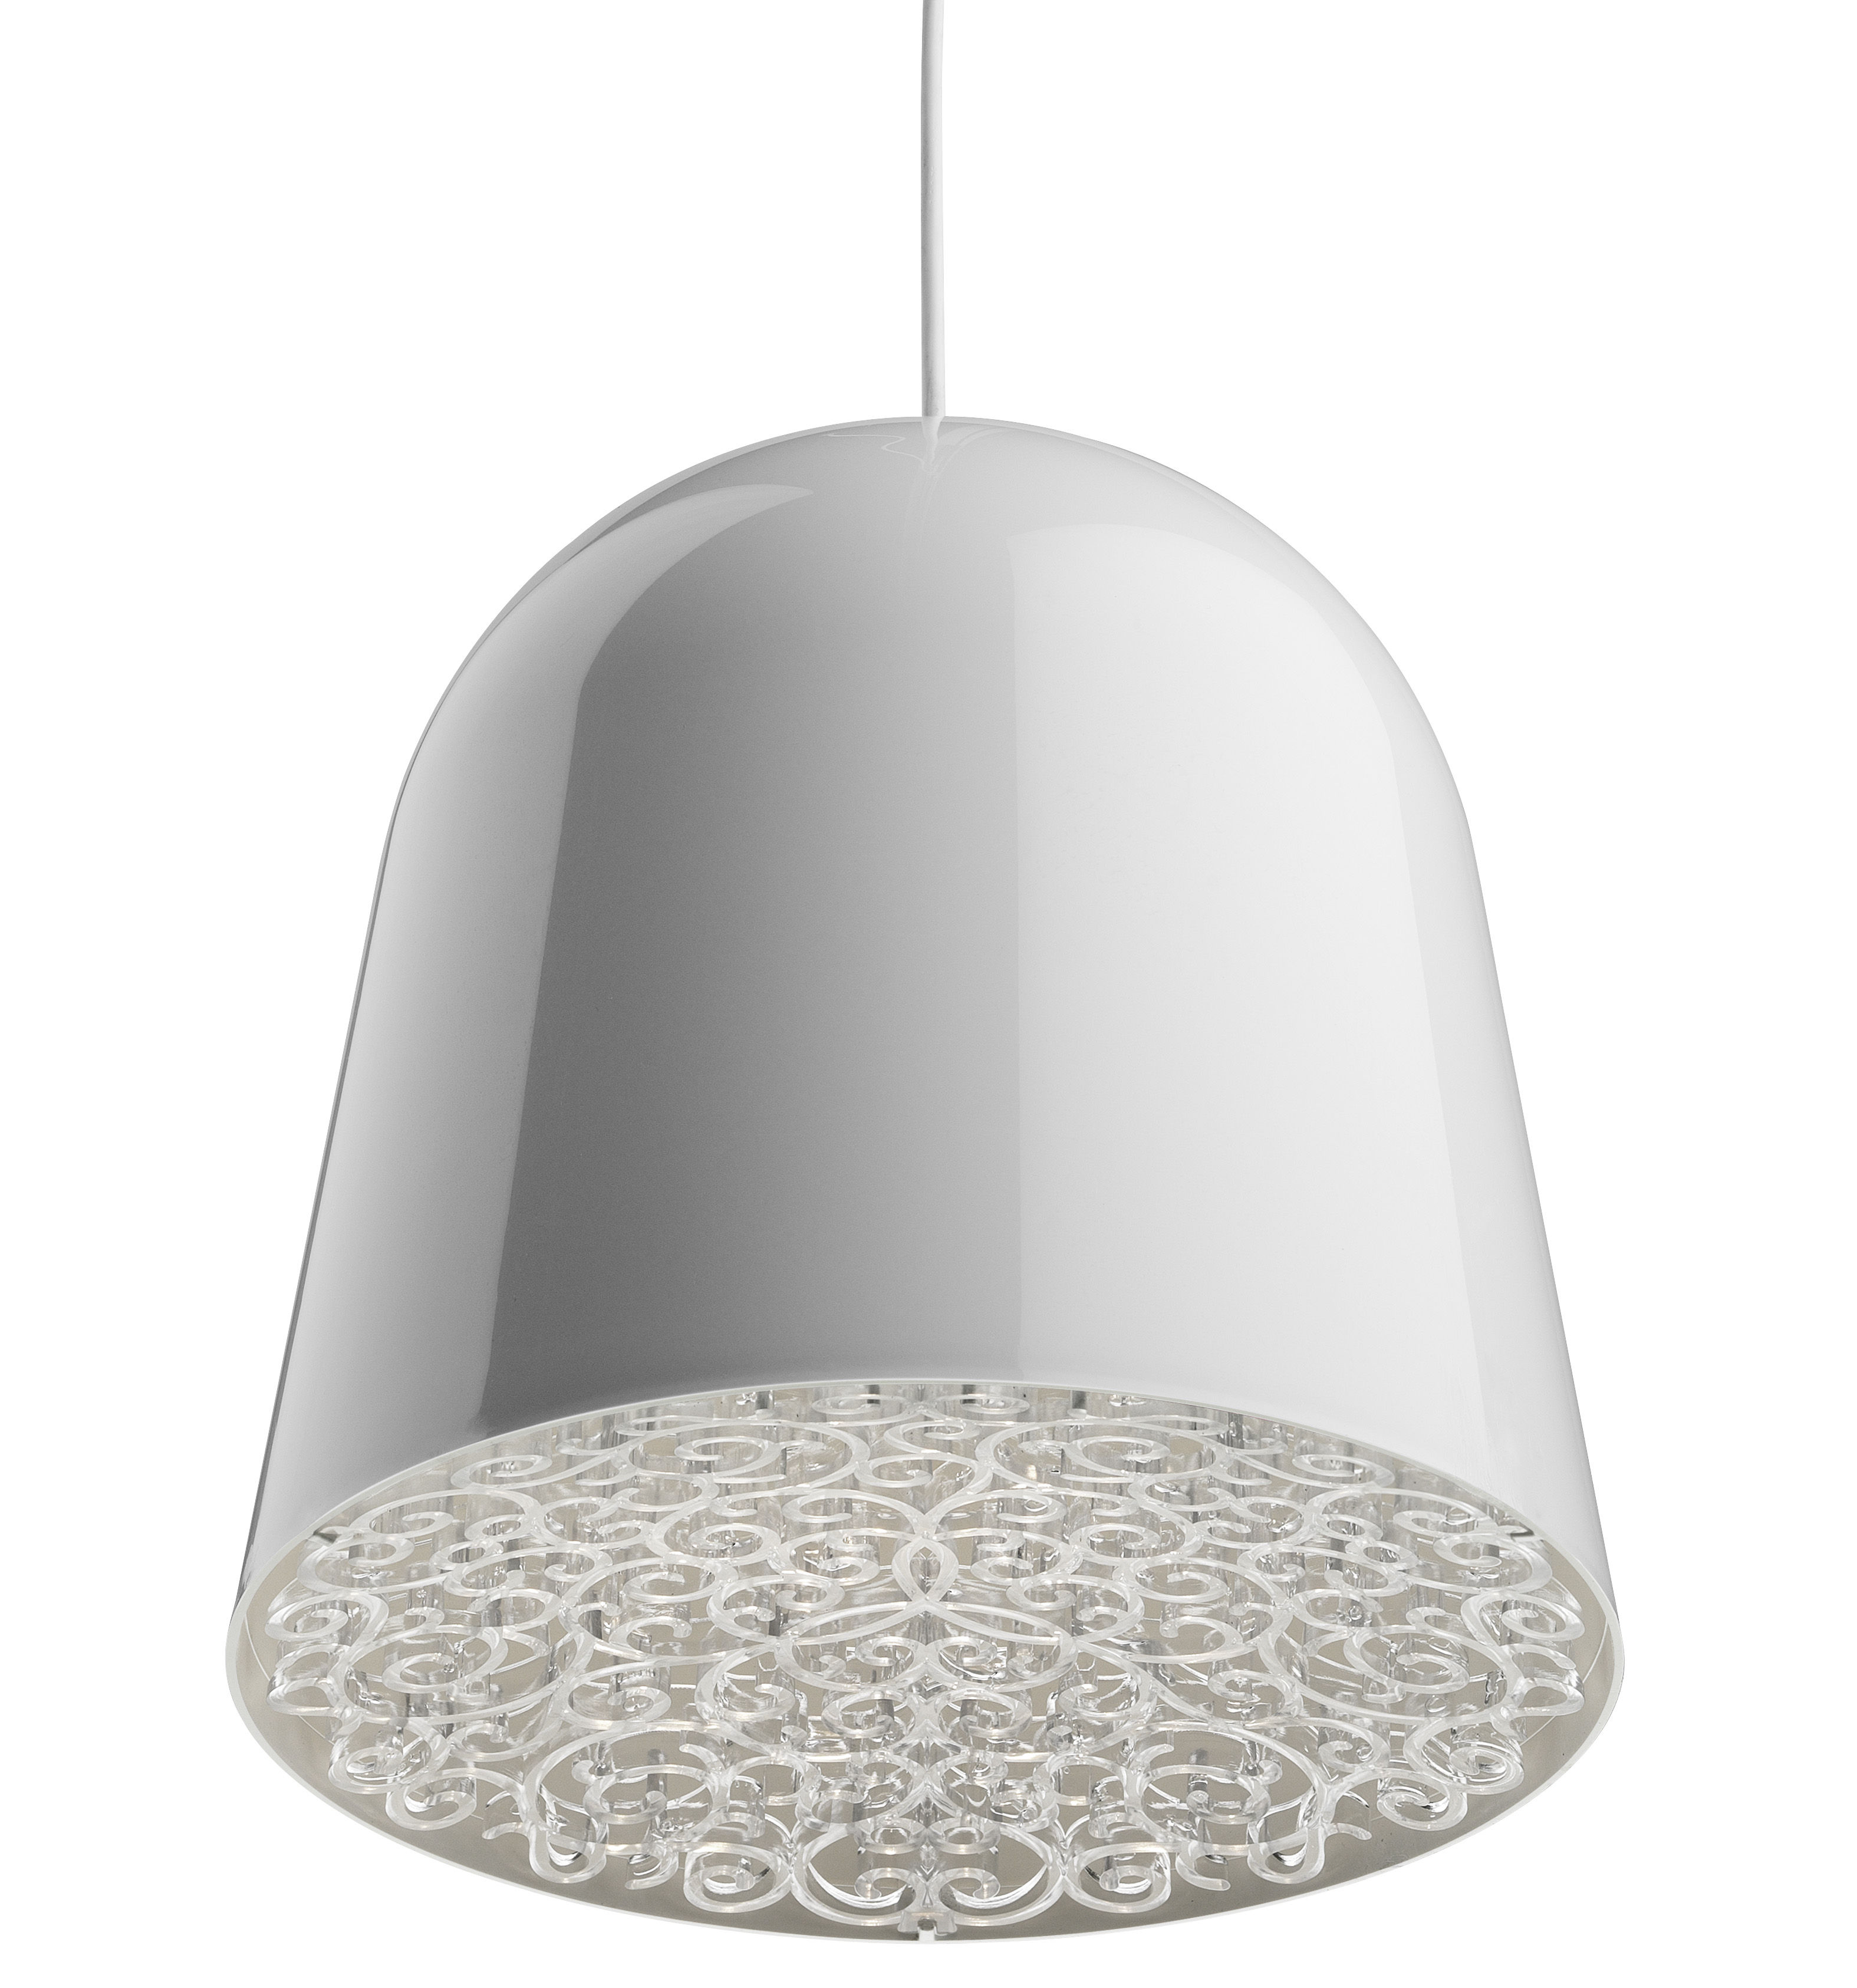 Luminaire - Suspensions - Suspension Can Can - Flos - Blanc / Frise transparente - PMMA, Polycarbonate